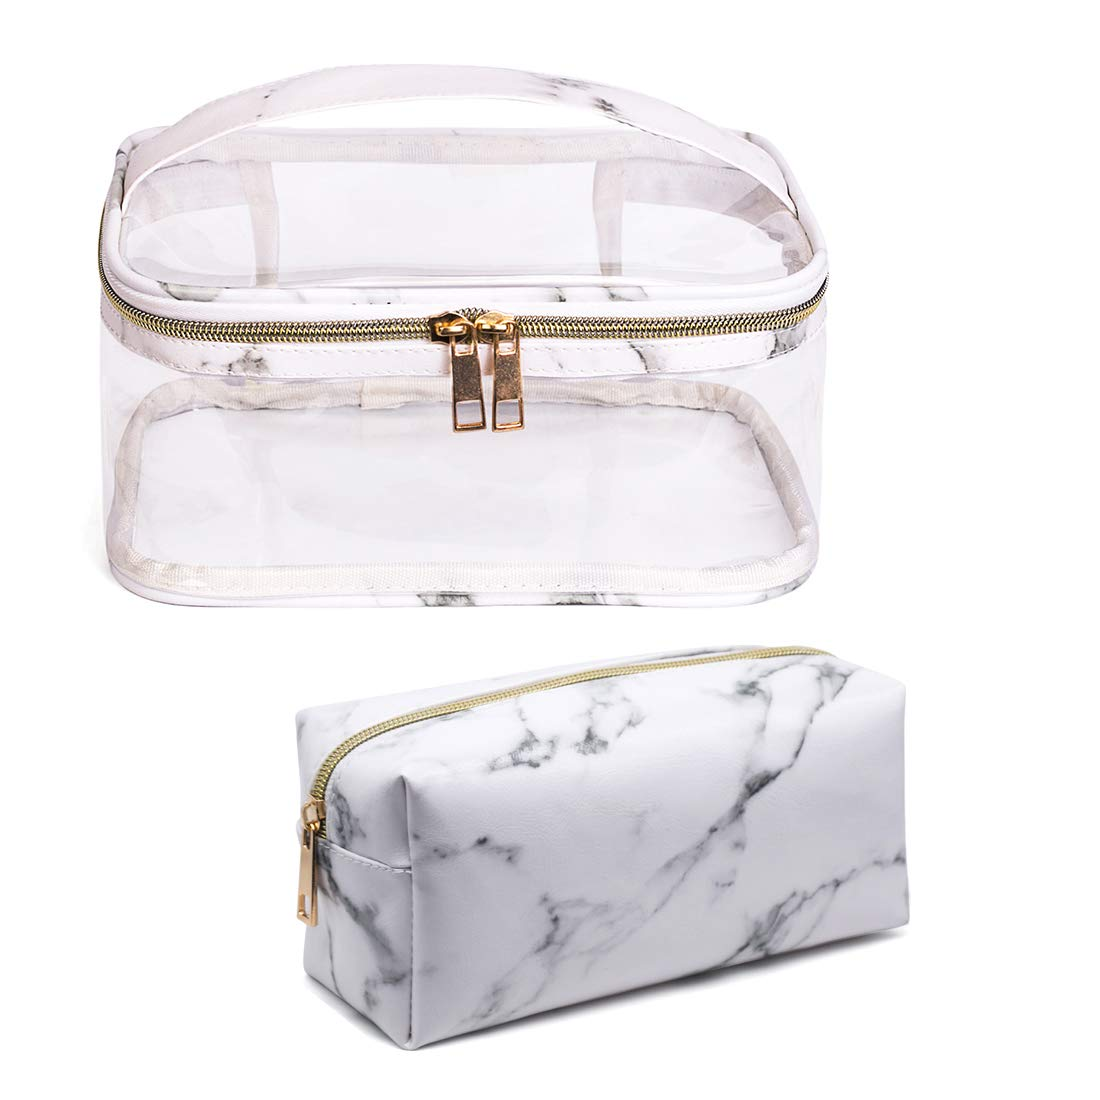 2 Pieces Clear Makeup Bag Organizer Marble Large Toiletry Bag Waterproof Transparent Travel Portable PVC Cosmetic Pouch With Handle Gold Zipper Storage Case for Women,White